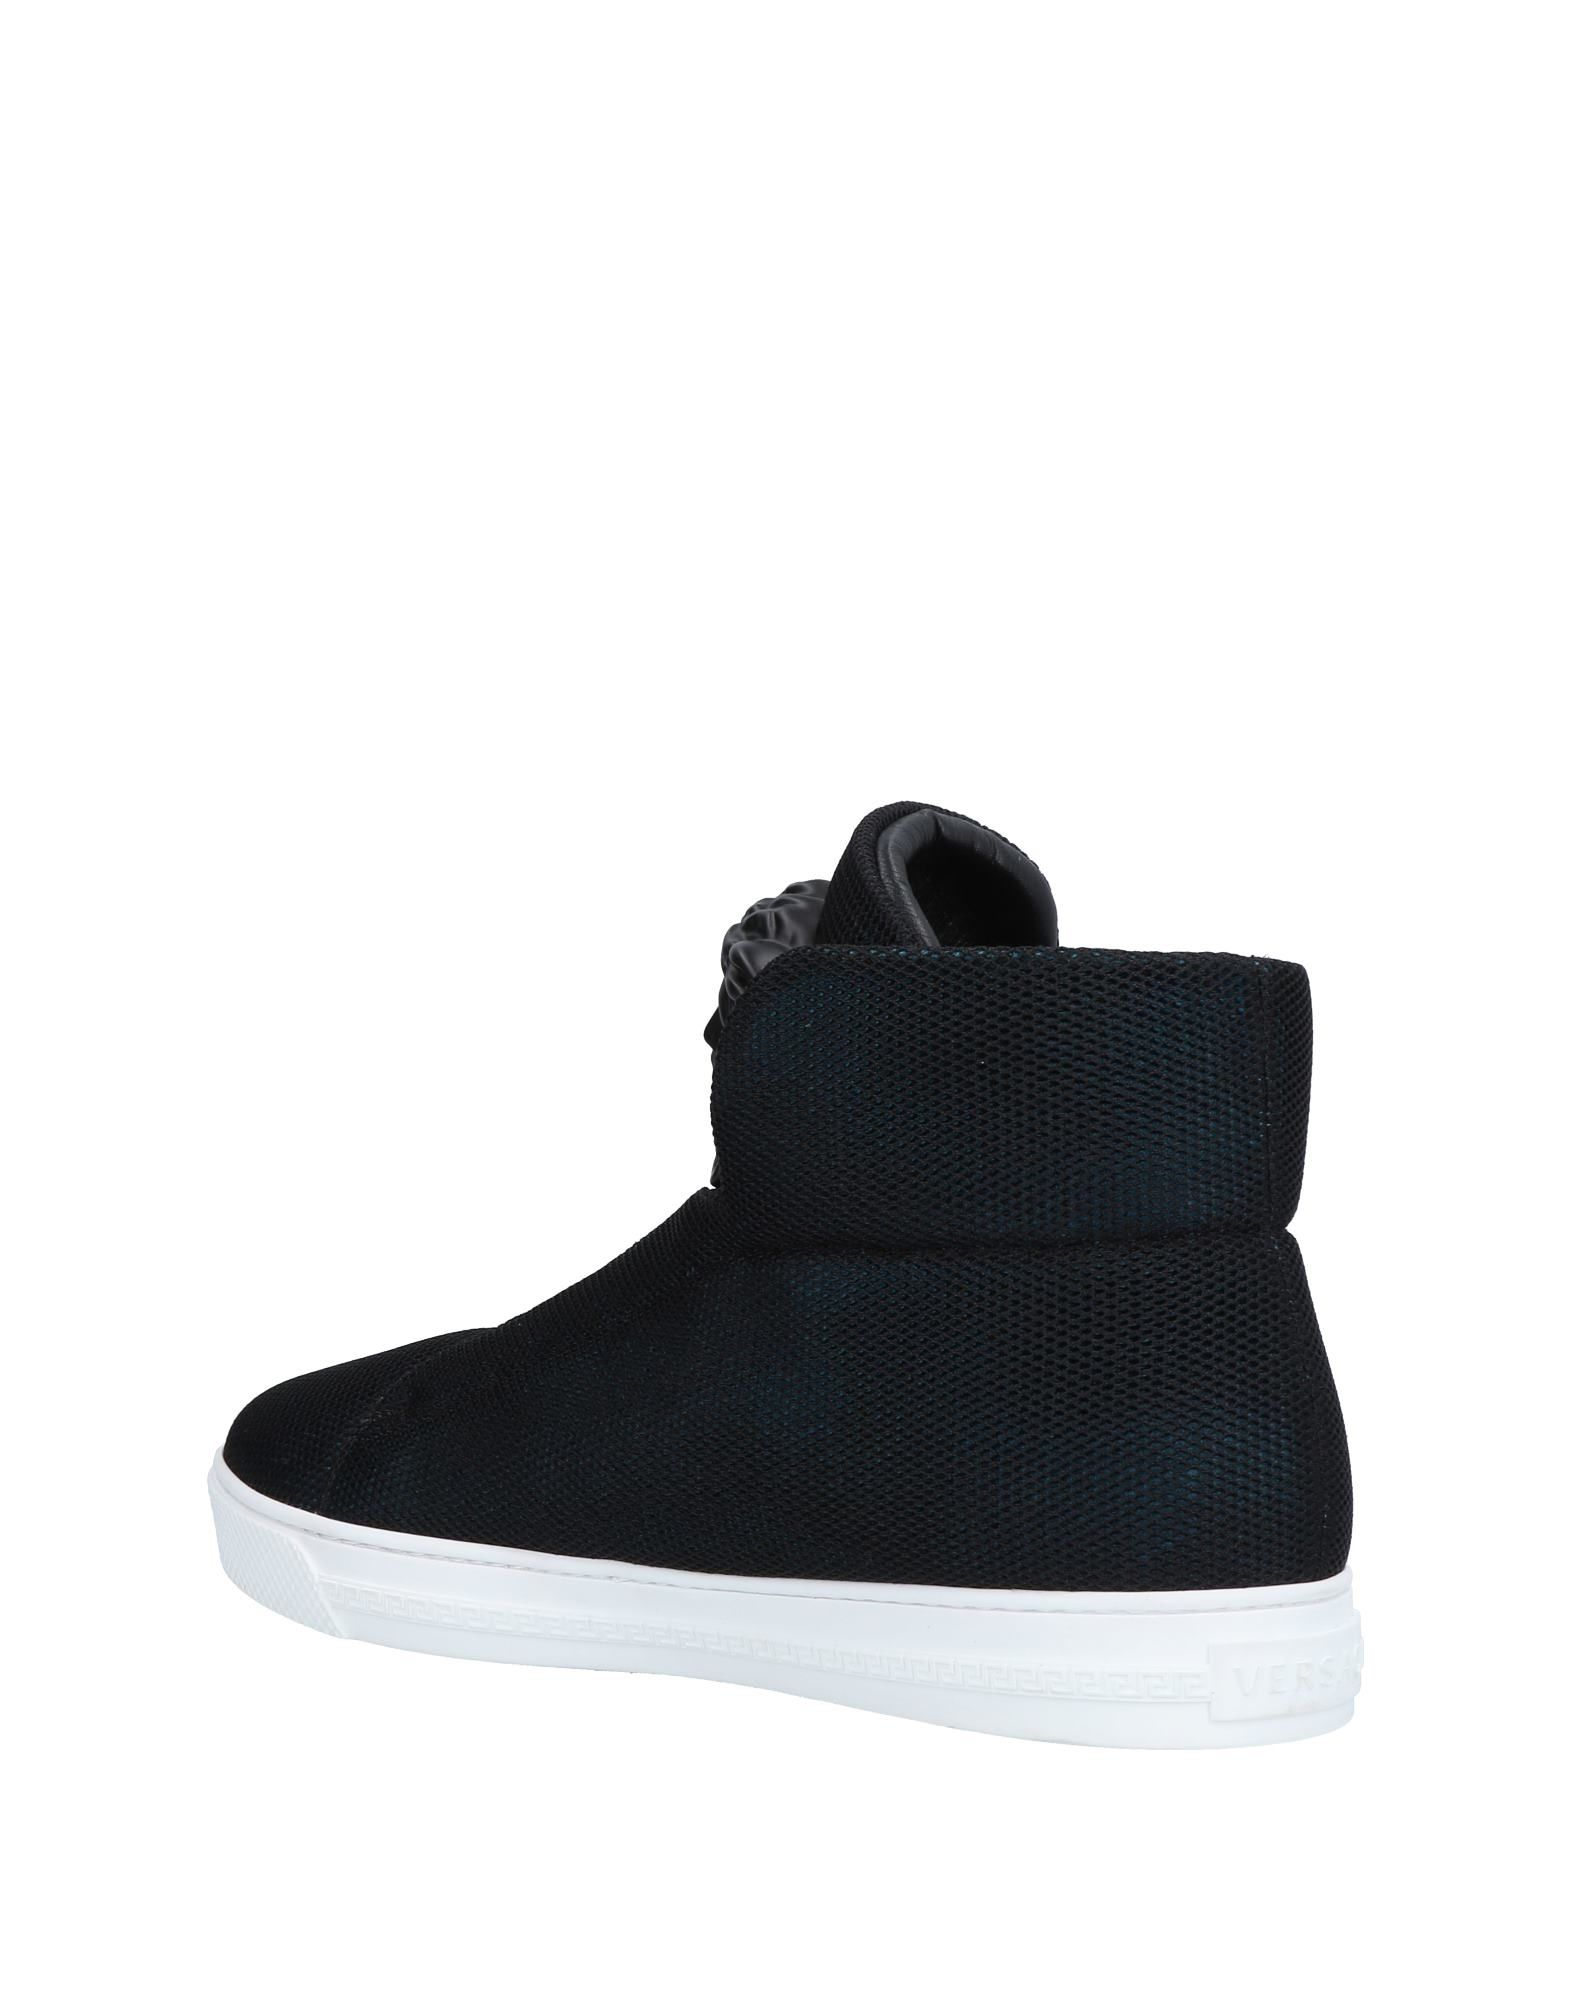 Versace Sneakers - Men Versace Versace Versace Sneakers online on  Canada - 11461306WO 0c4485